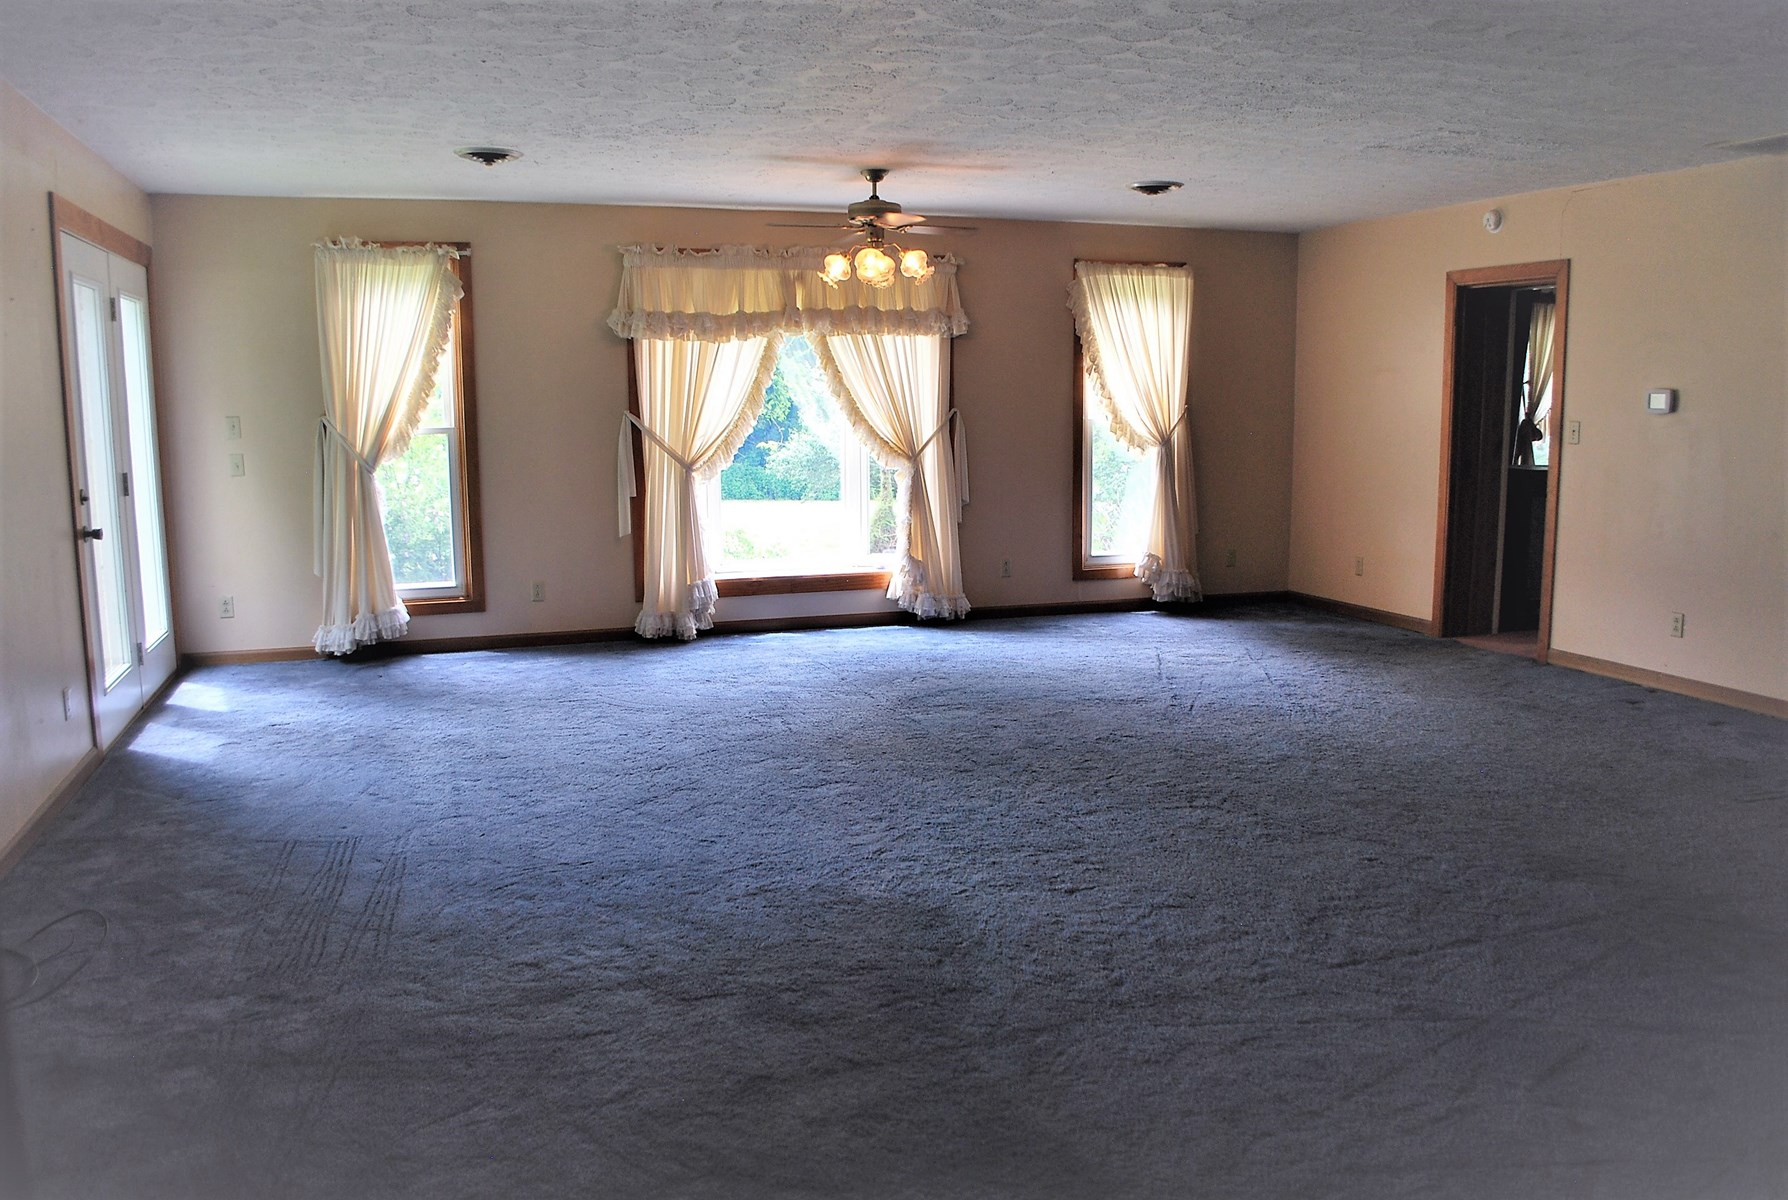 MBR, sellers used it as a living area